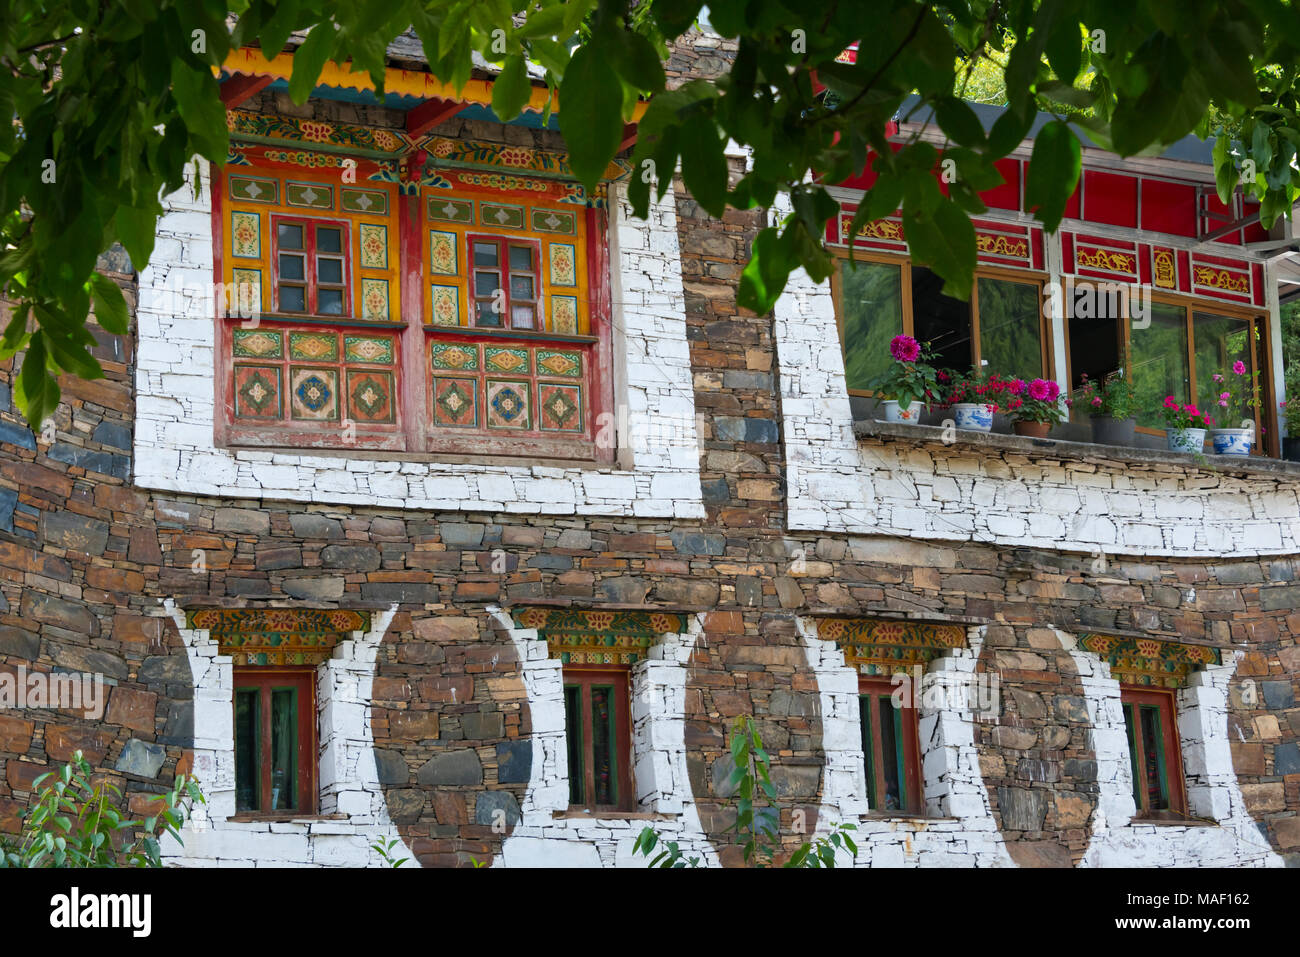 Old house in Zhuokeji Headman's Village, Ngawa Tibetan and Qiang Autonomous Prefecture, western Sichuan, China - Stock Image